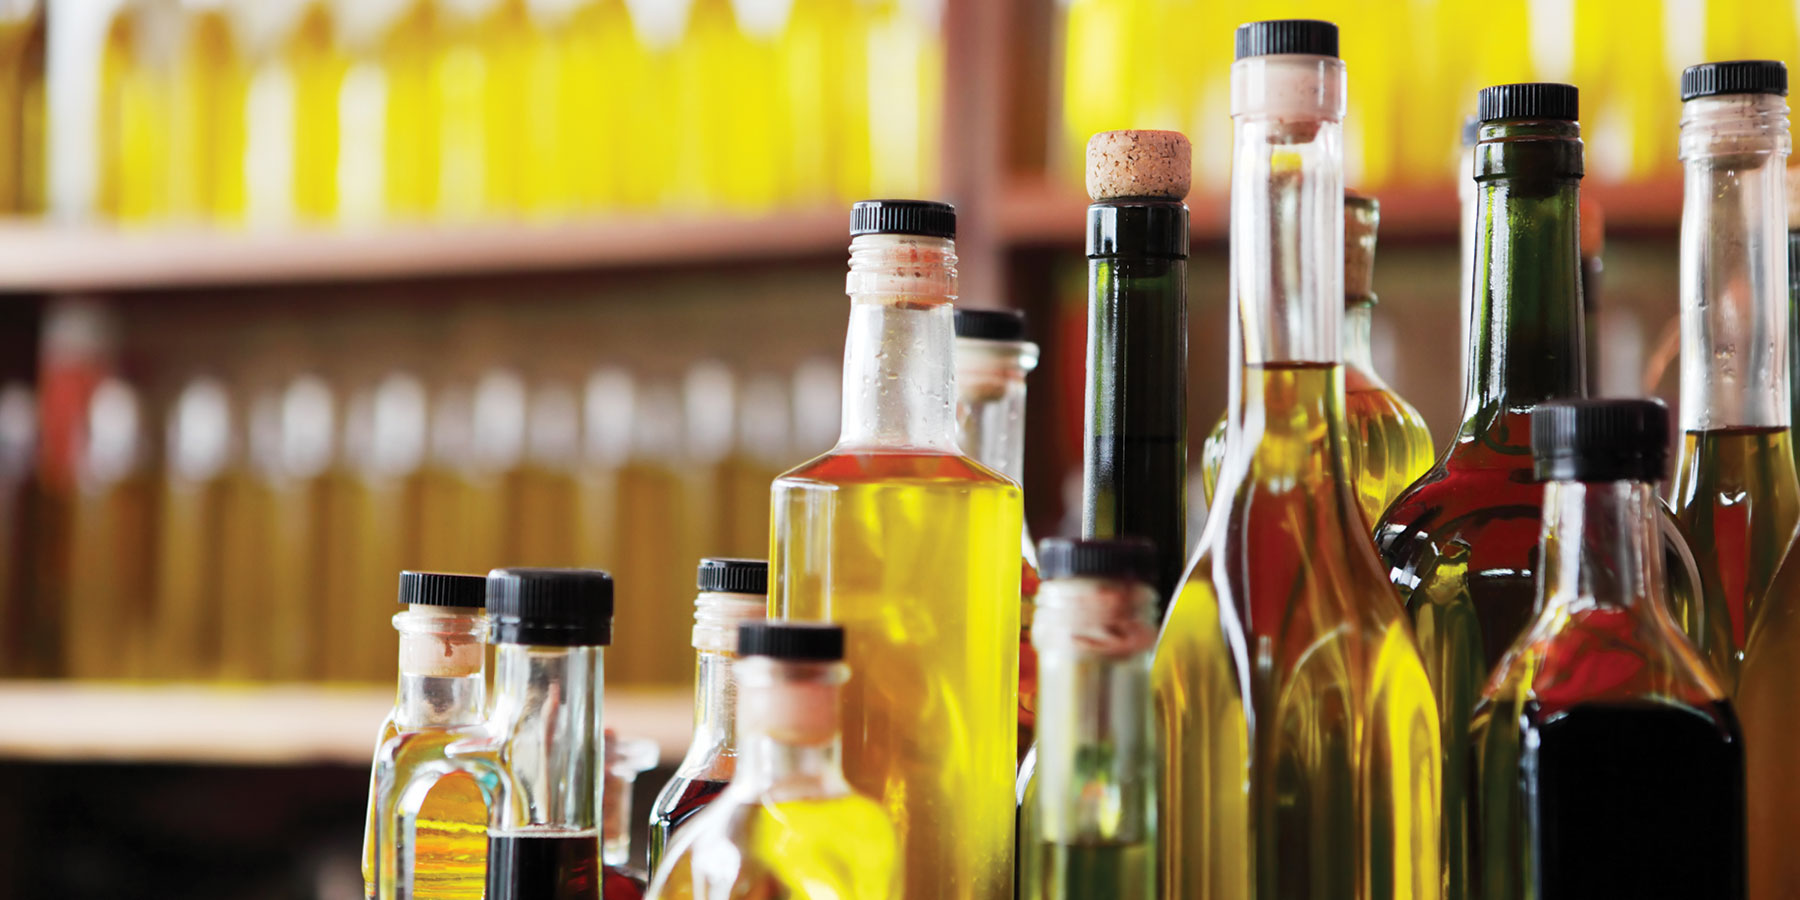 Identifying Food Fraud with Analytical Testing